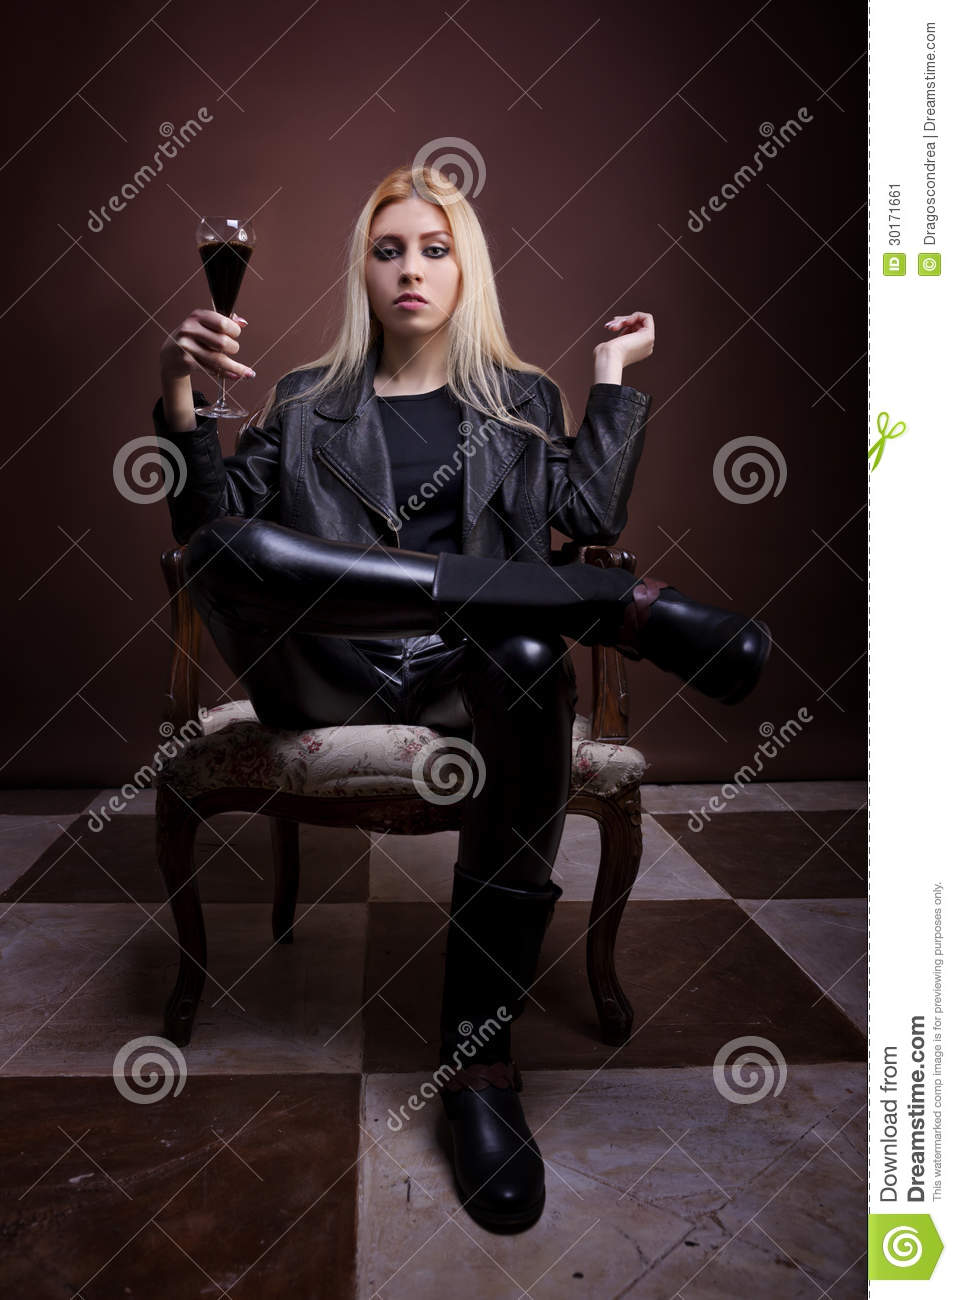 Woman in leather jaket